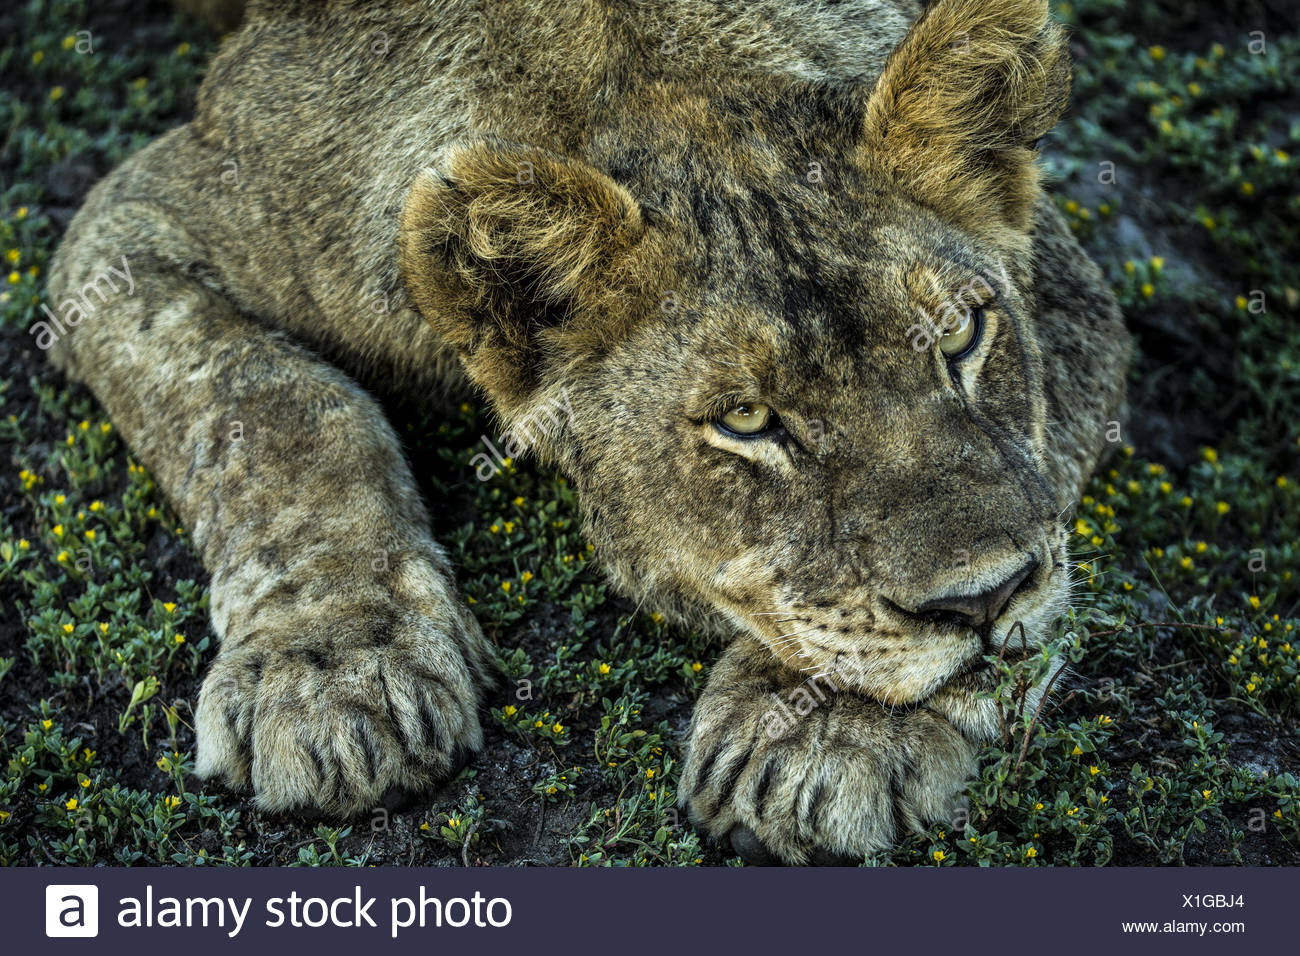 A young lion, Panthera leo, rests on flowering shrubs. - Stock Image